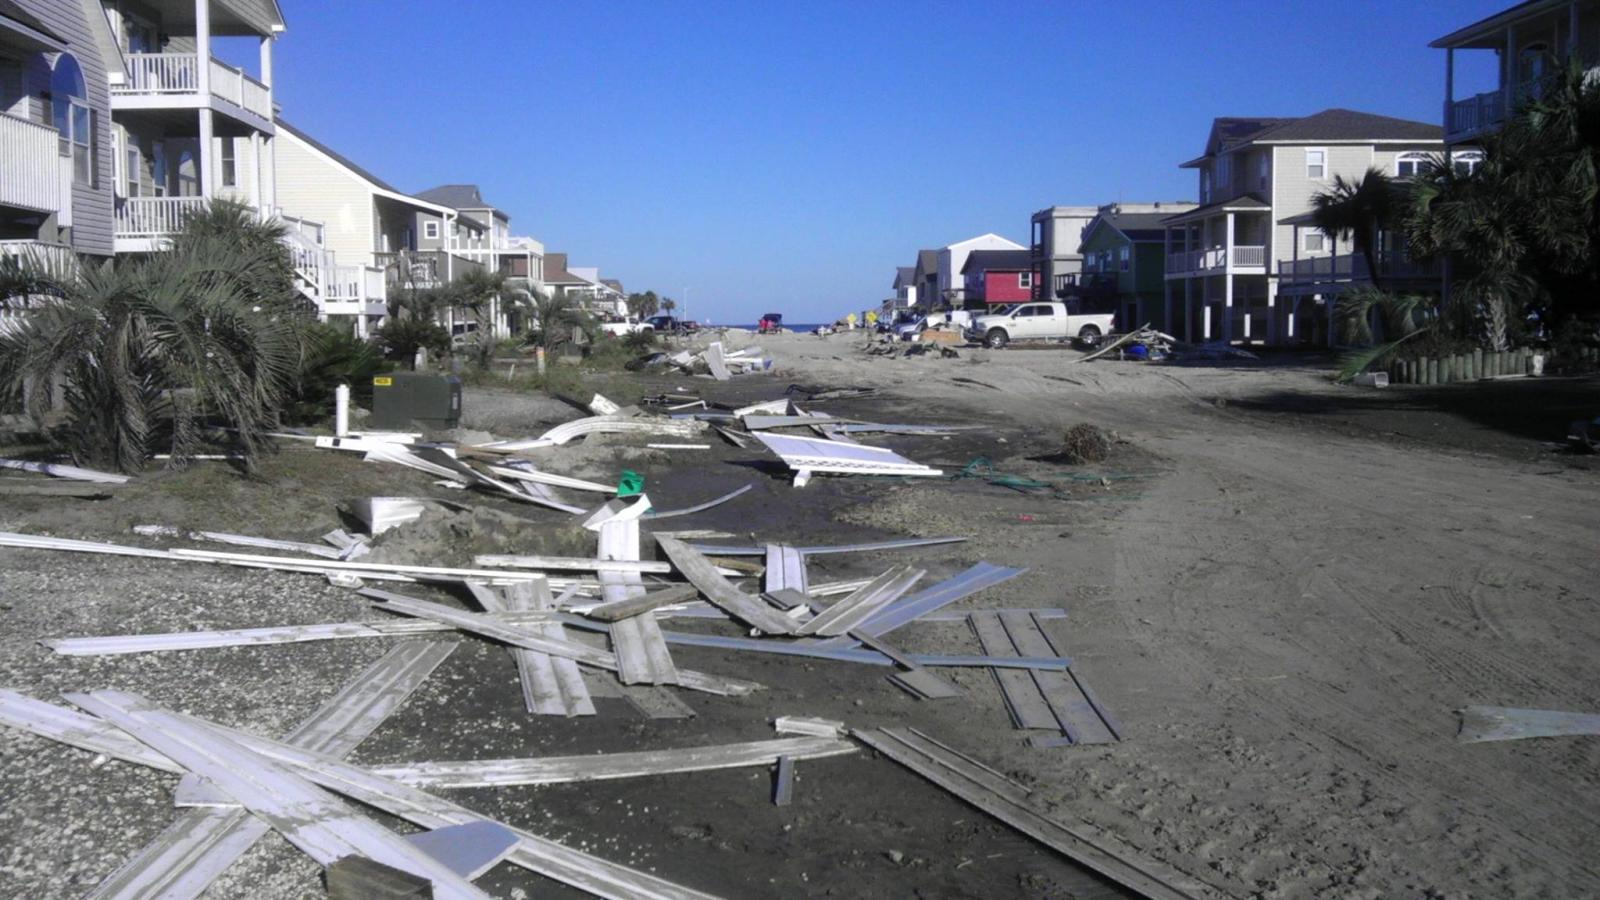 More damage from Hurricane Matthew's wind and storm surge in Ocean Isle Beach, NC